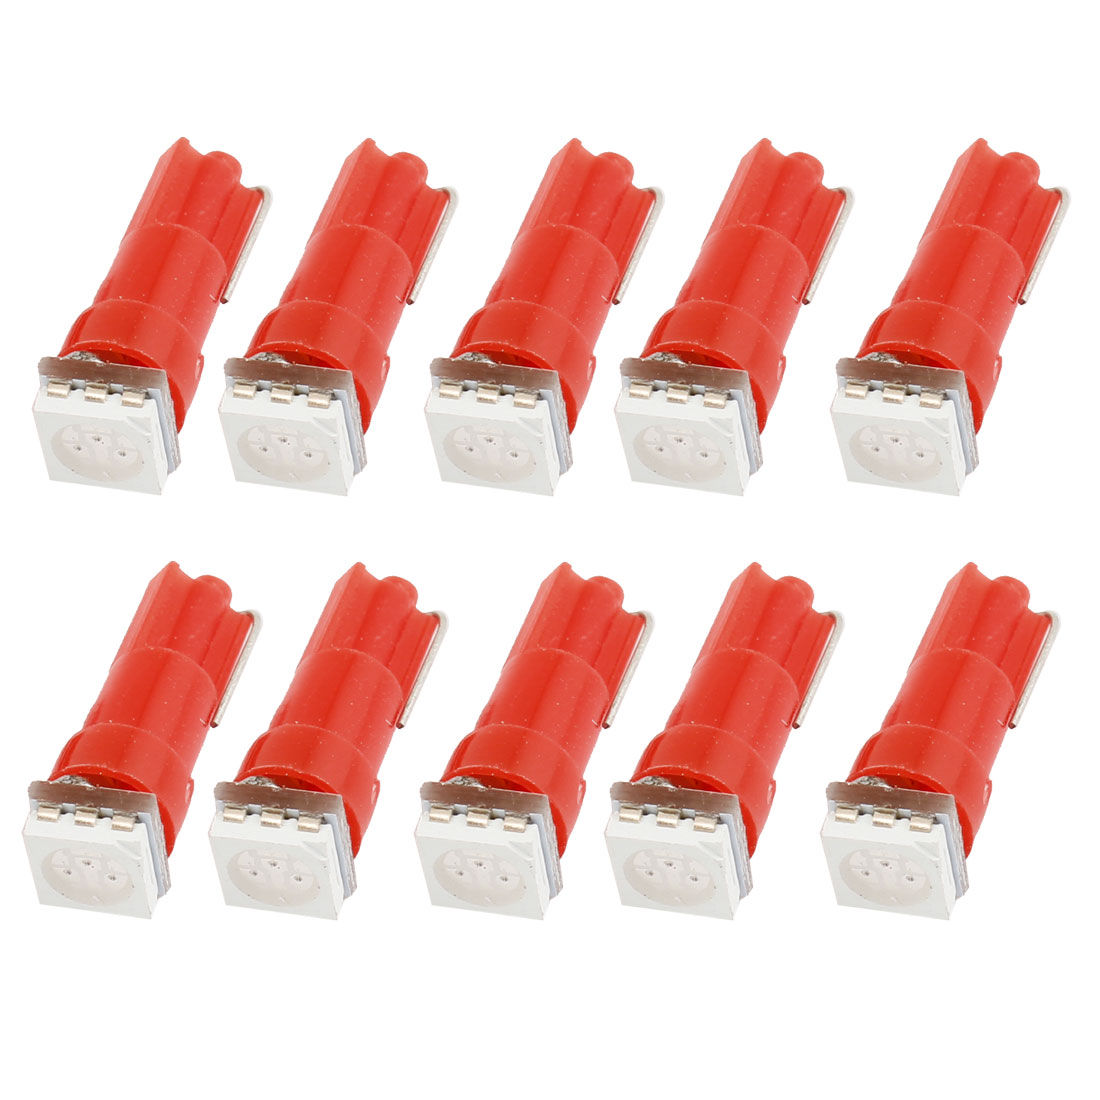 DC 12V T5 5050 Red SMD LED Car Truck Side Lights Dashboard Lamps Bulbs 10pcs